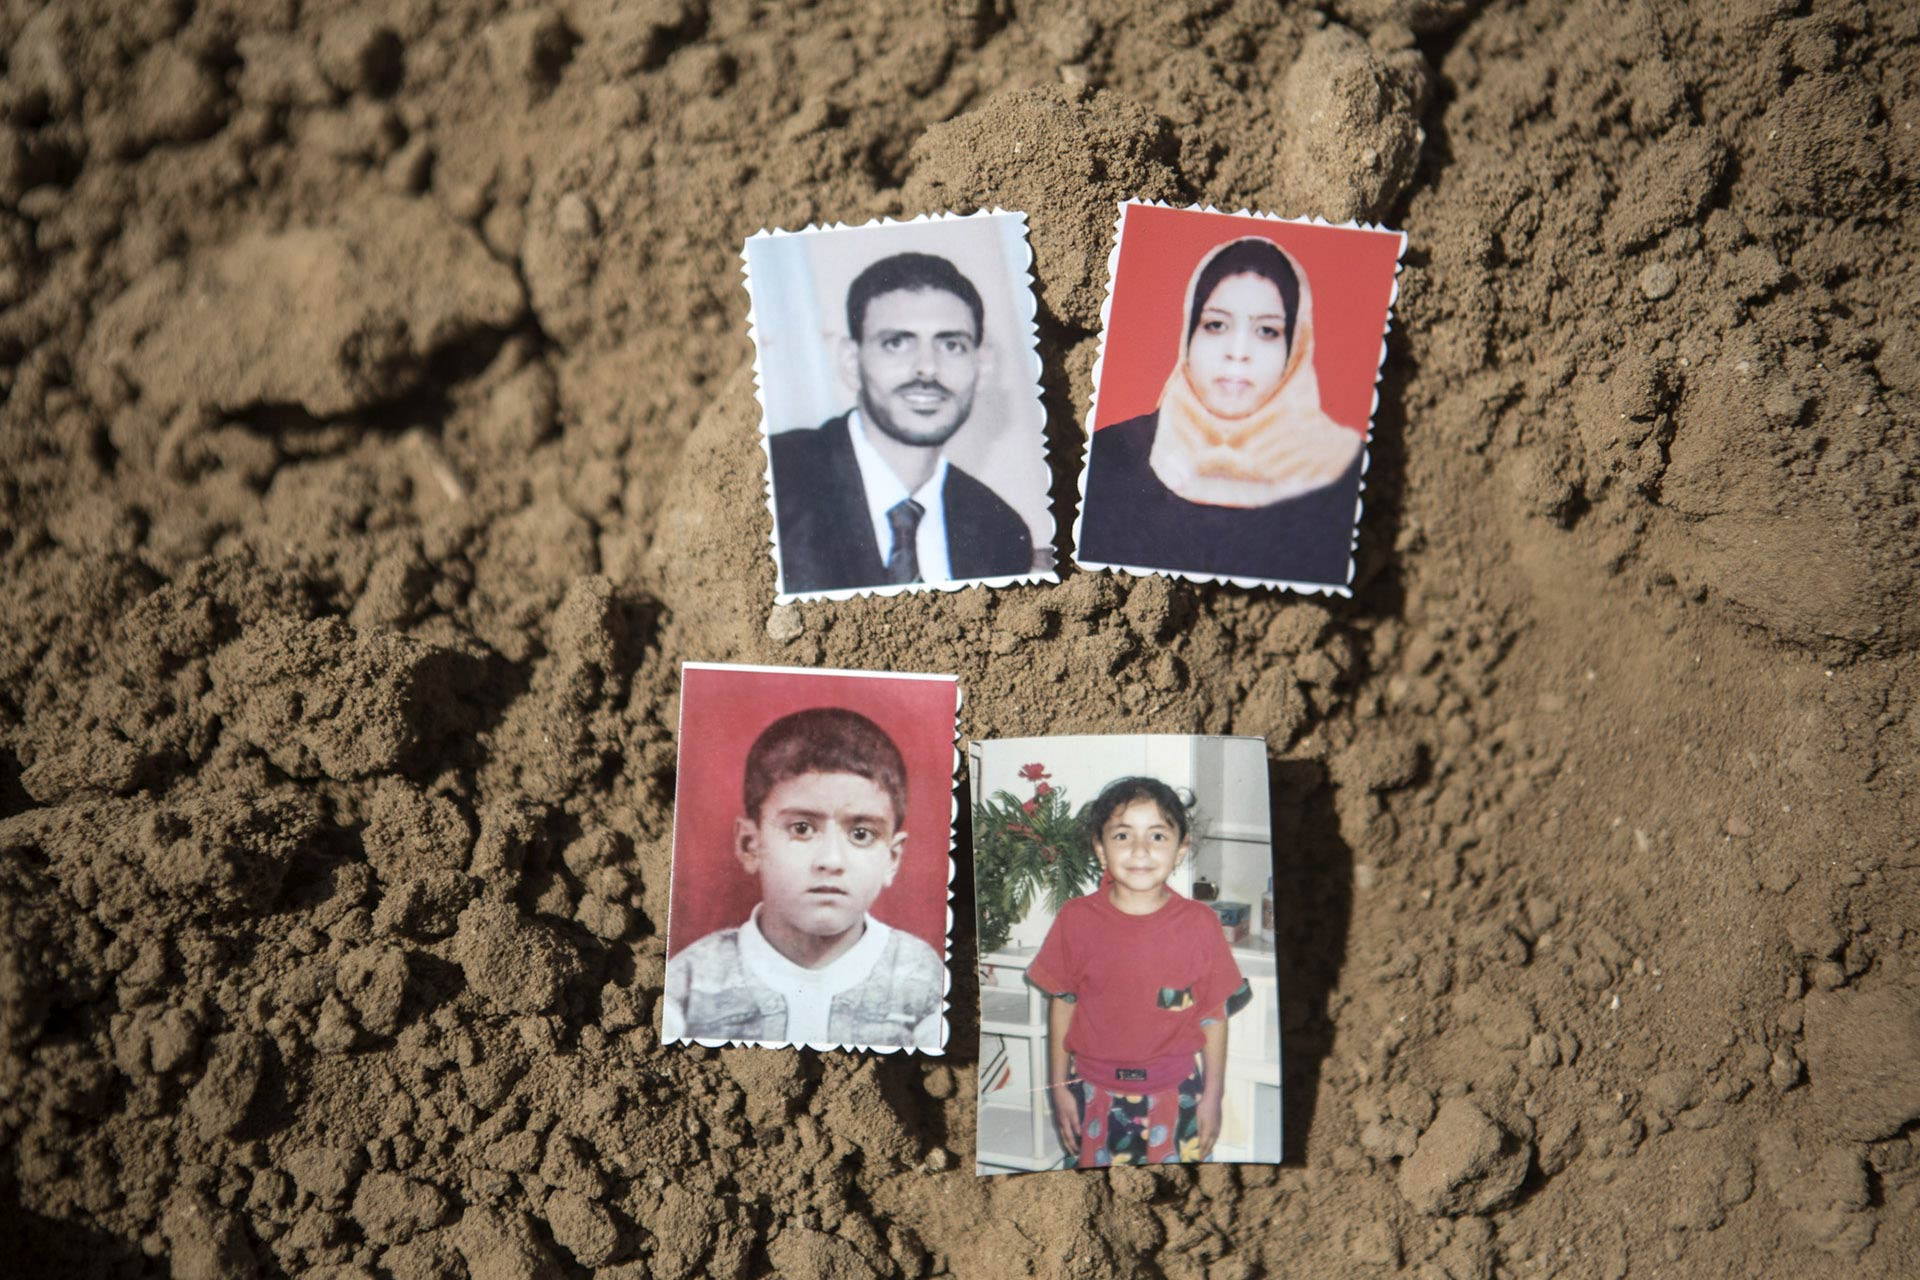 Rafat, Mustafa's son, had three little kids. Two boys, the eldest ten-year-old Mustafa, named traditionally after his grandfather, Maysara, seven years old, and a daughter named Farah, six years old. His wife Nabila was pregnant at the time of the attack. The photo of 10-year-old Mustafa is missing.